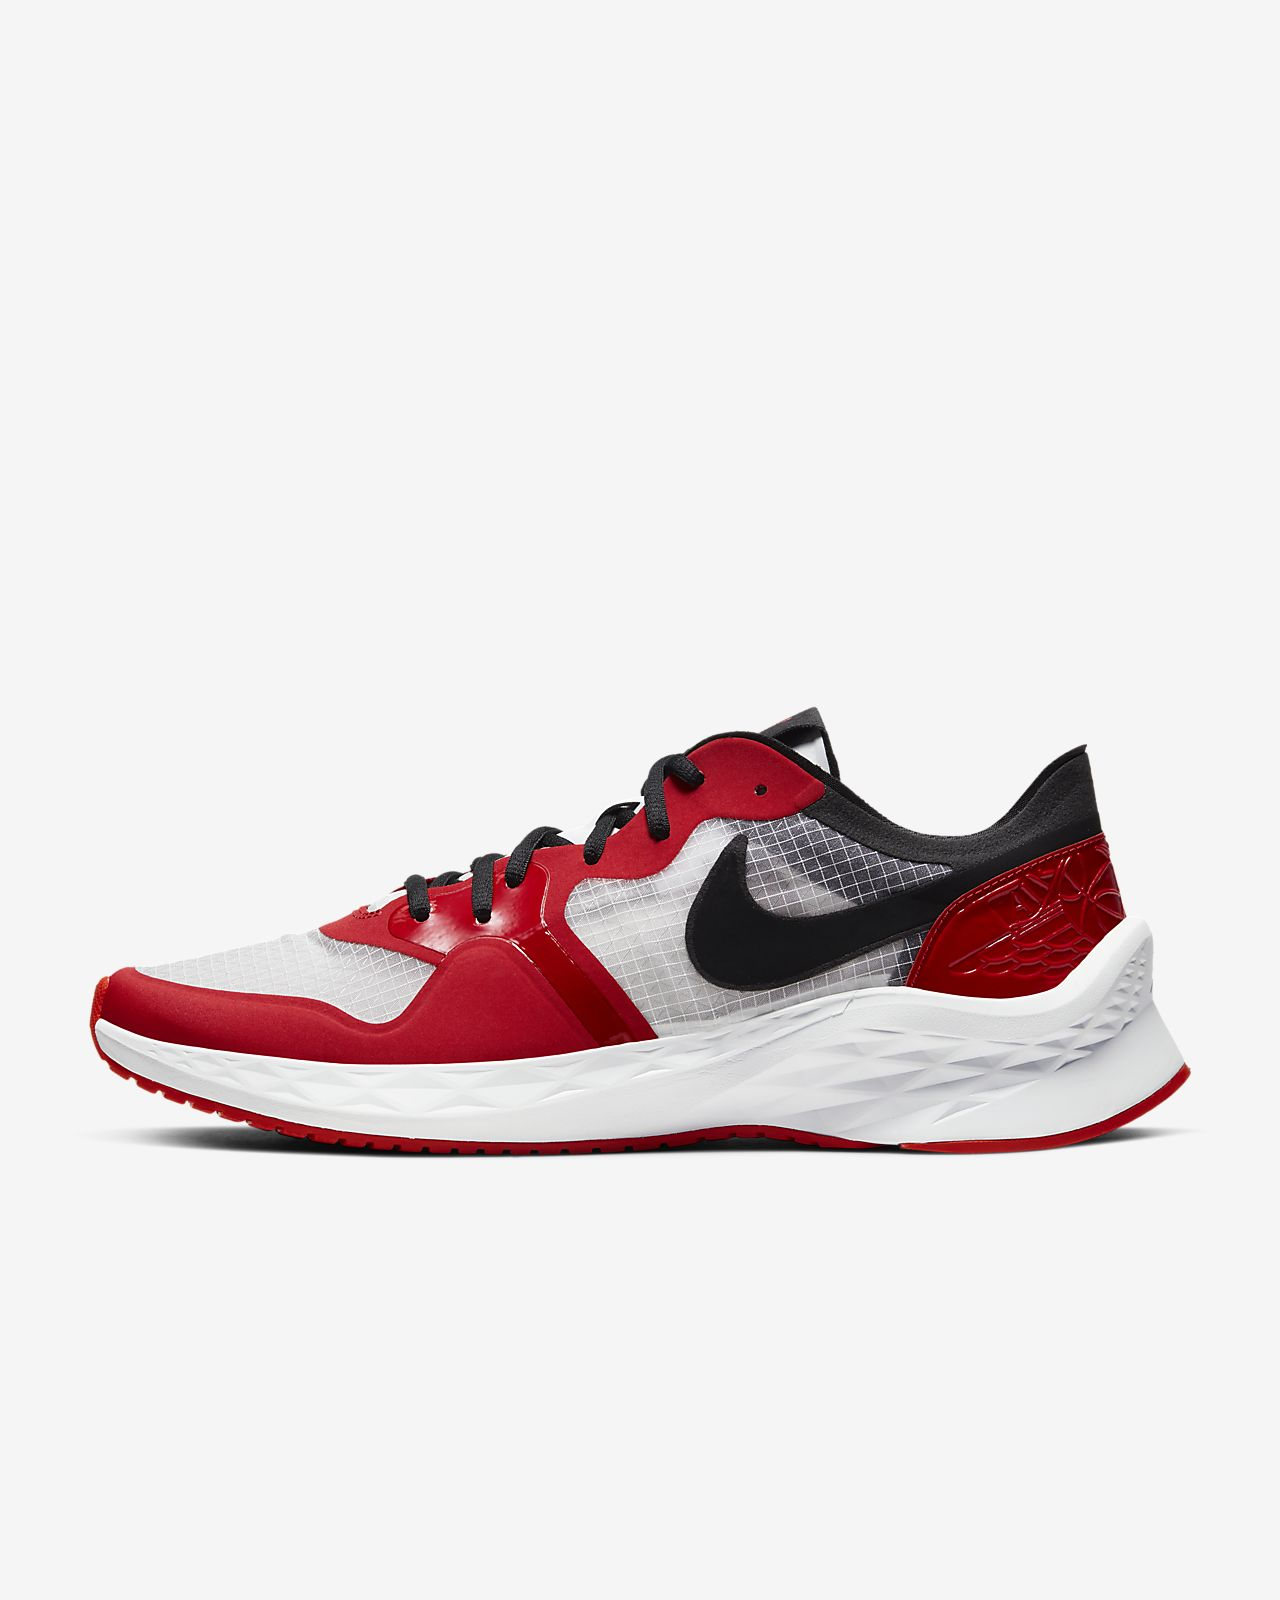 Jordan Air Zoom 85 Runner Men's Training Shoe